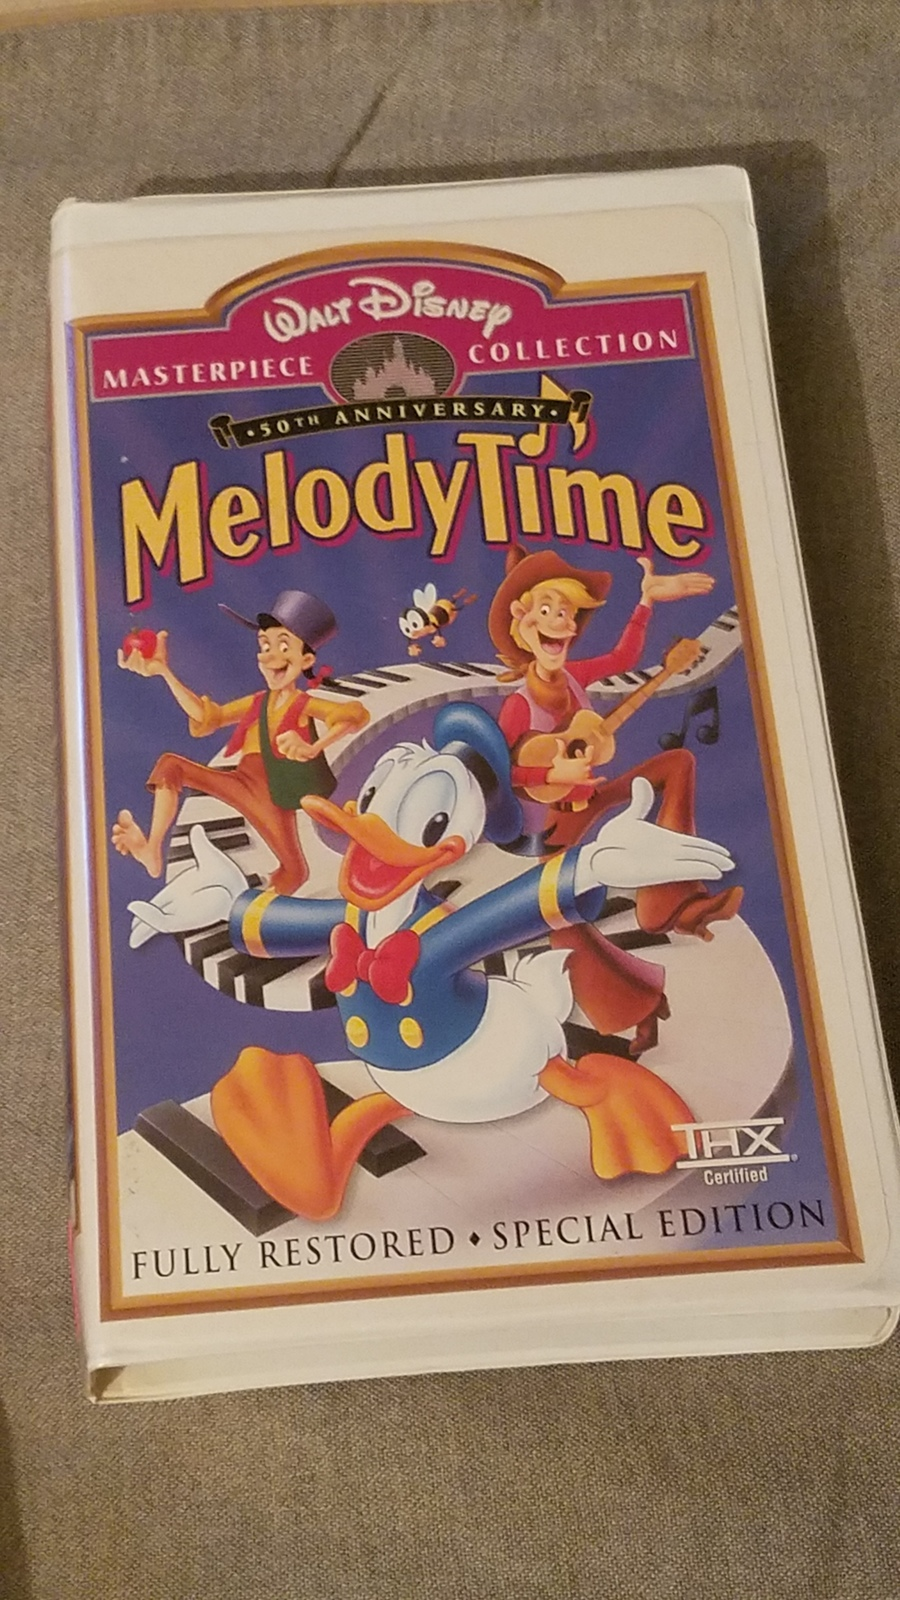 Walt Disney Masterpiece collection 50th Anniversary Melody time VHS